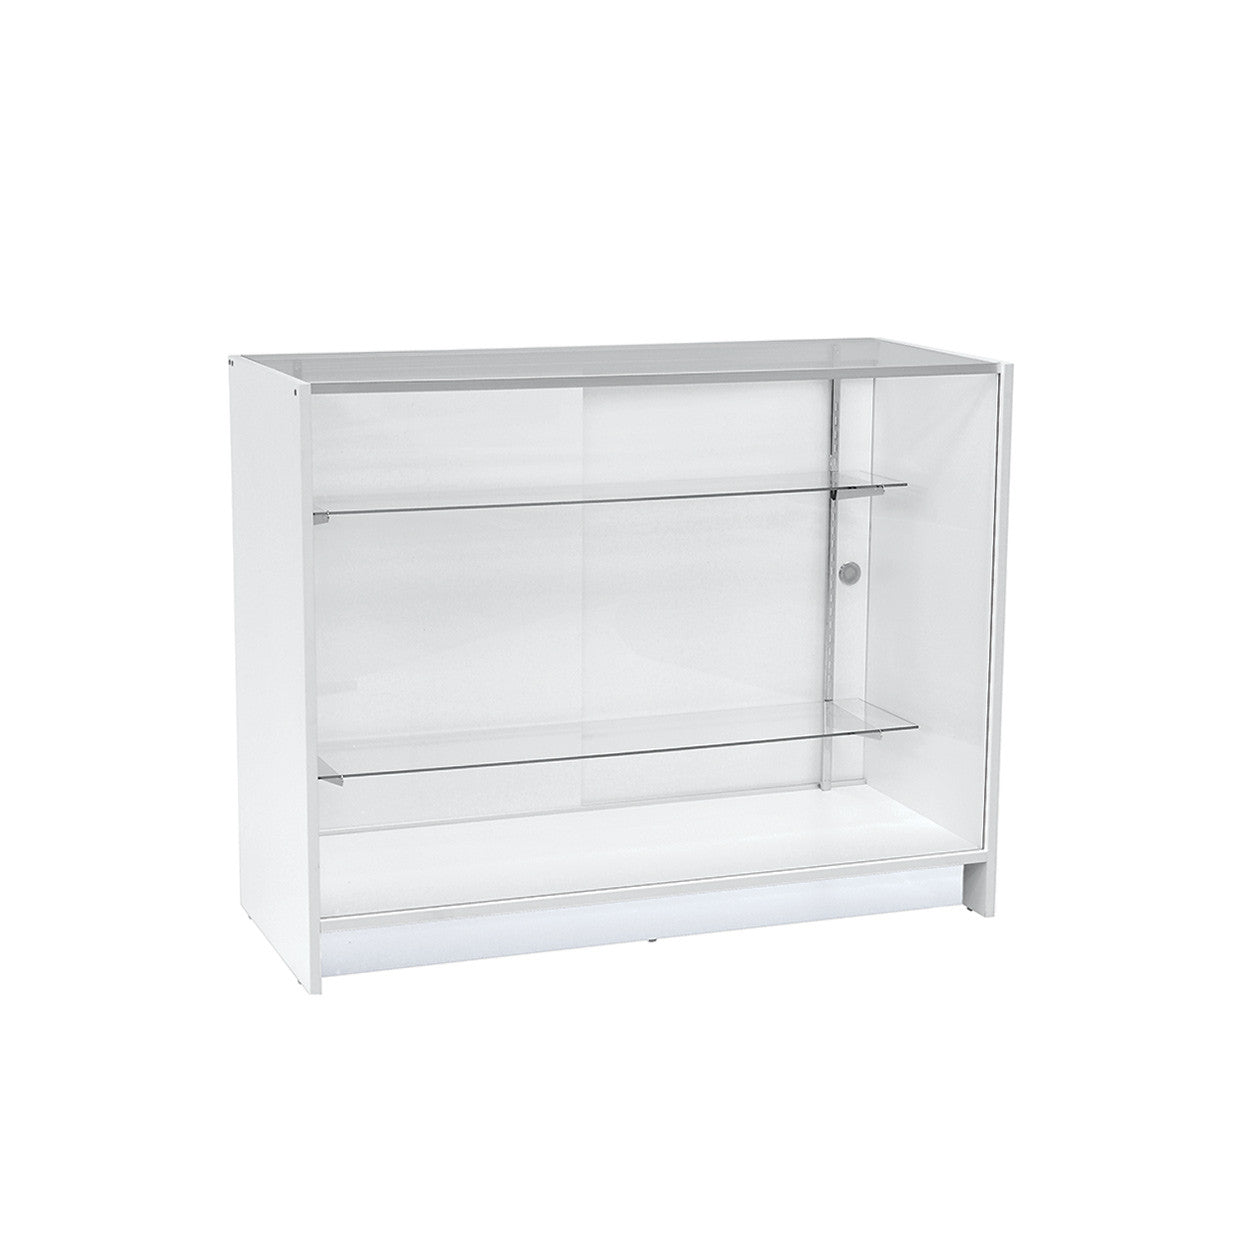 Counter showcase 1200 w timber laminate glass top & 2 shelves  1200 W x 965 H x 508  mm D F5000WH